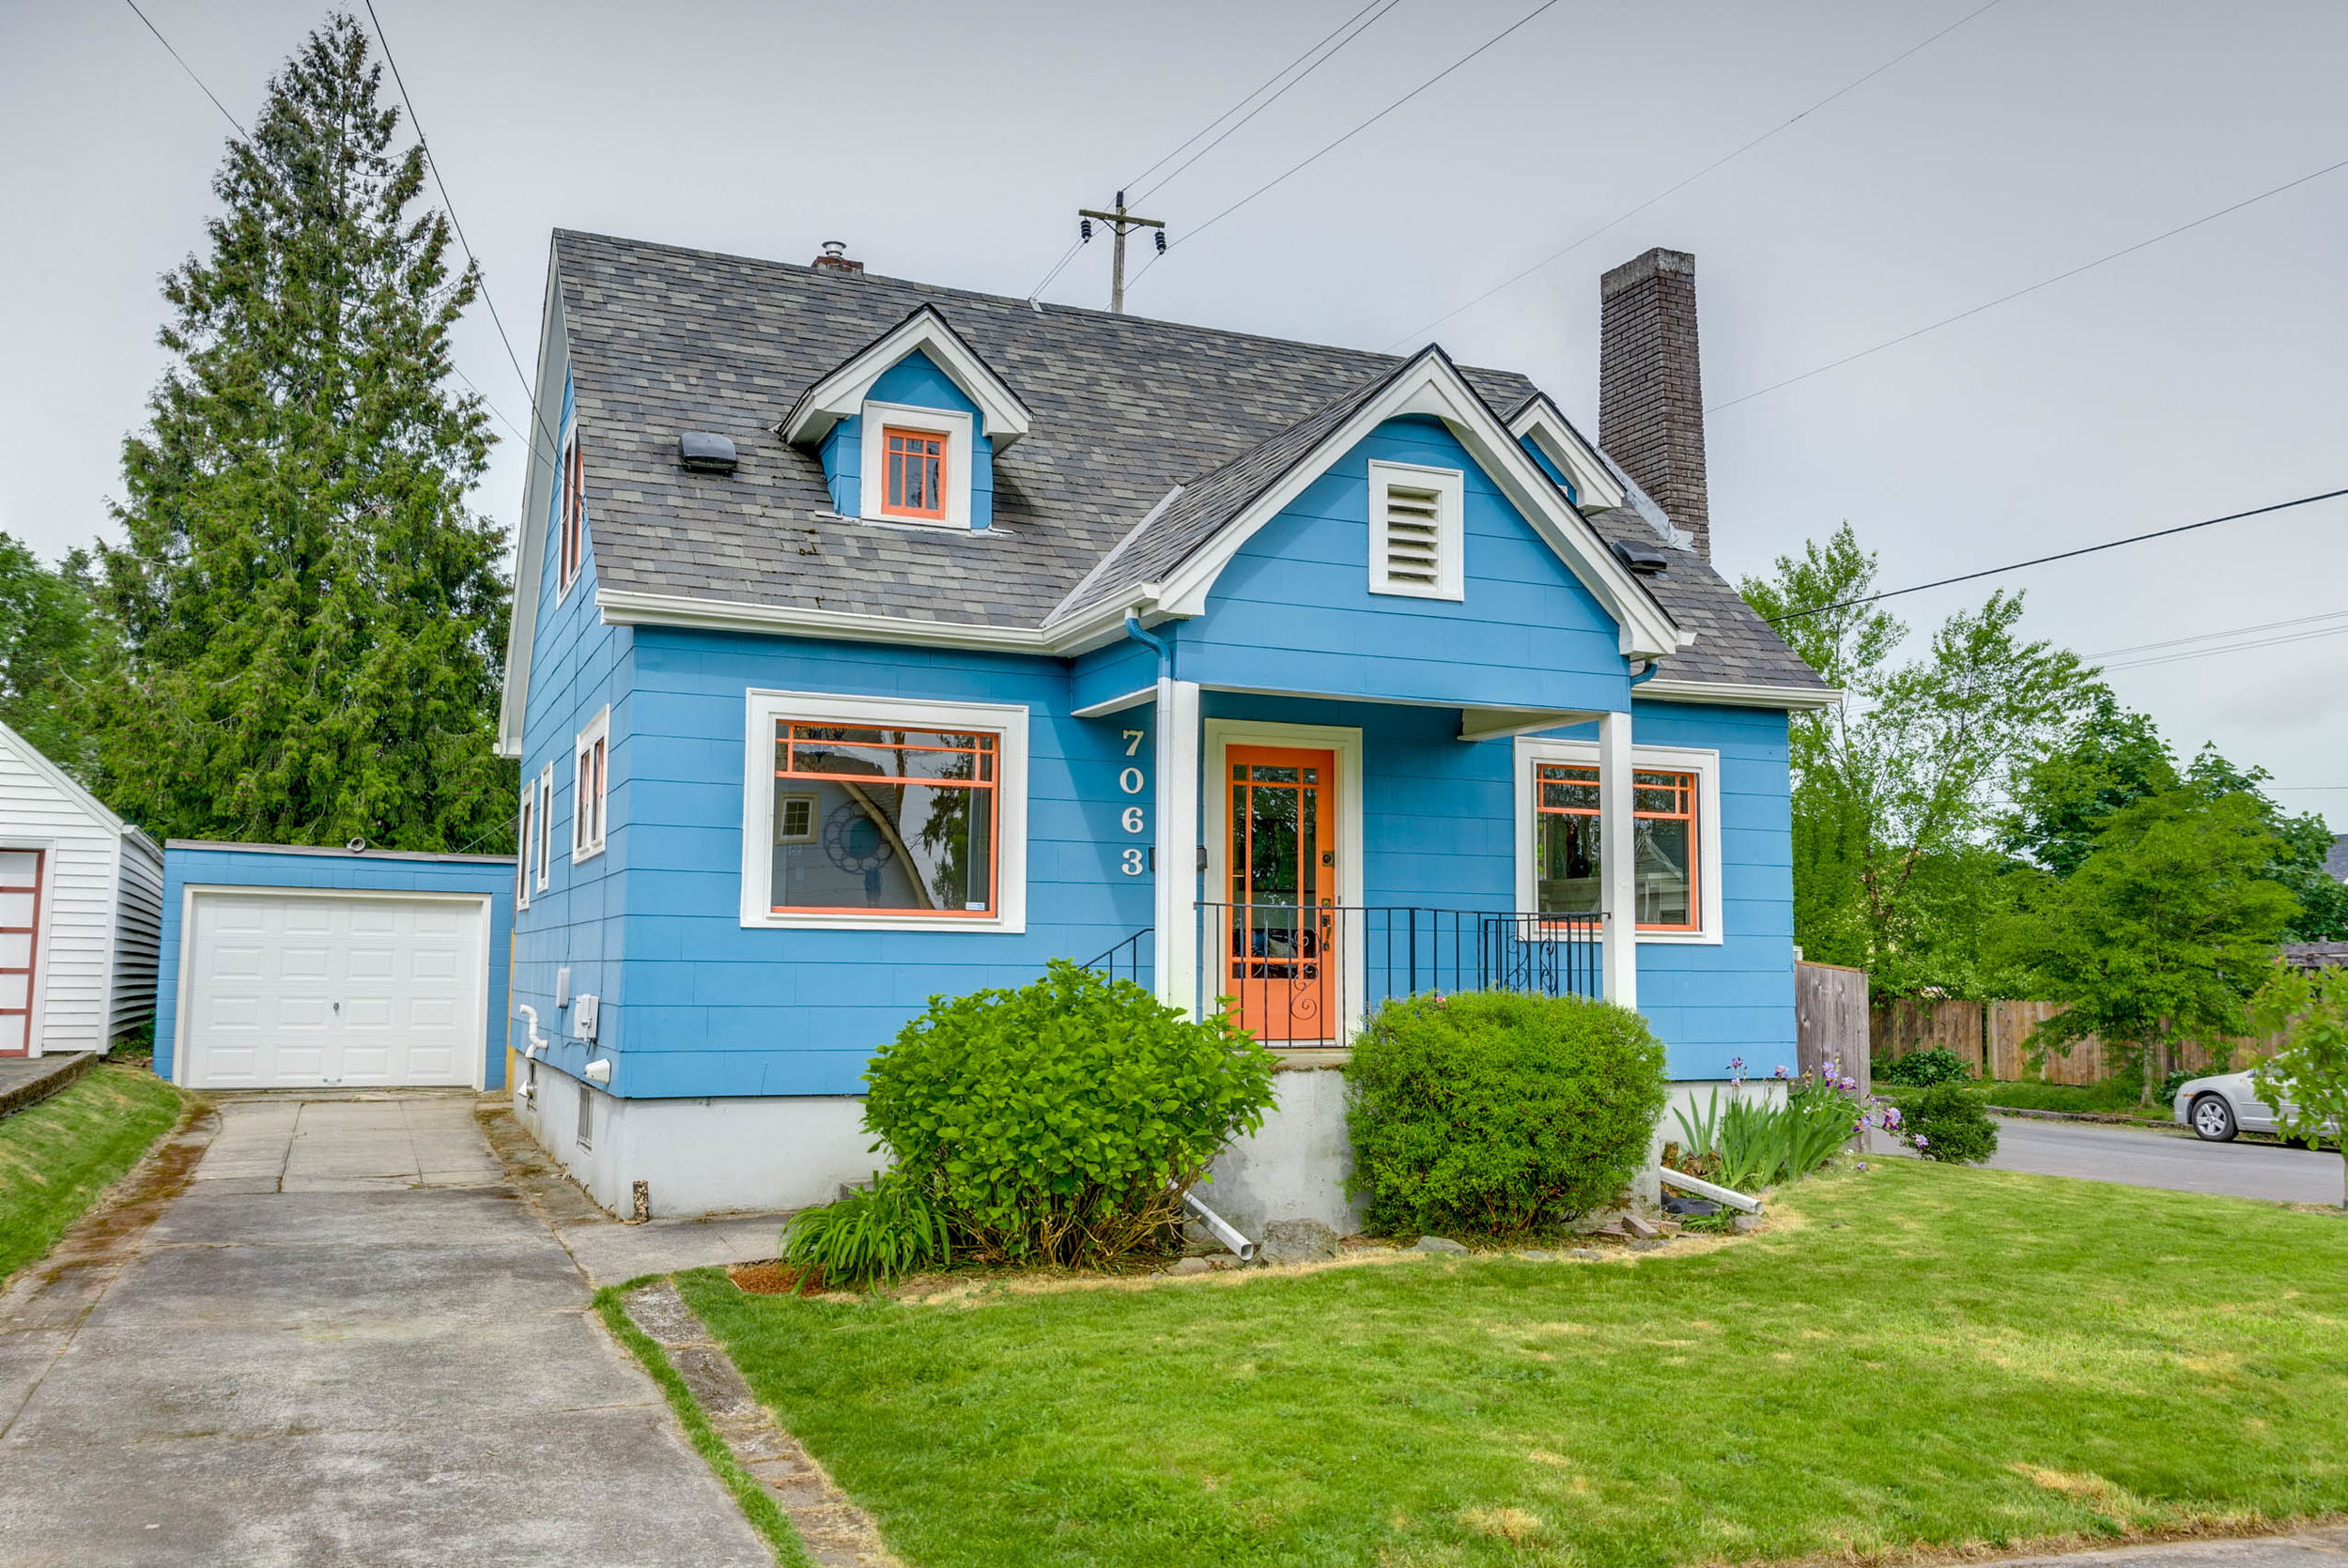 Perfectly beautiful classic on quiet street - 7063 N Commercial Ave., Portland OROffered at $400,000OPEN SAT 5/18 12-2PM